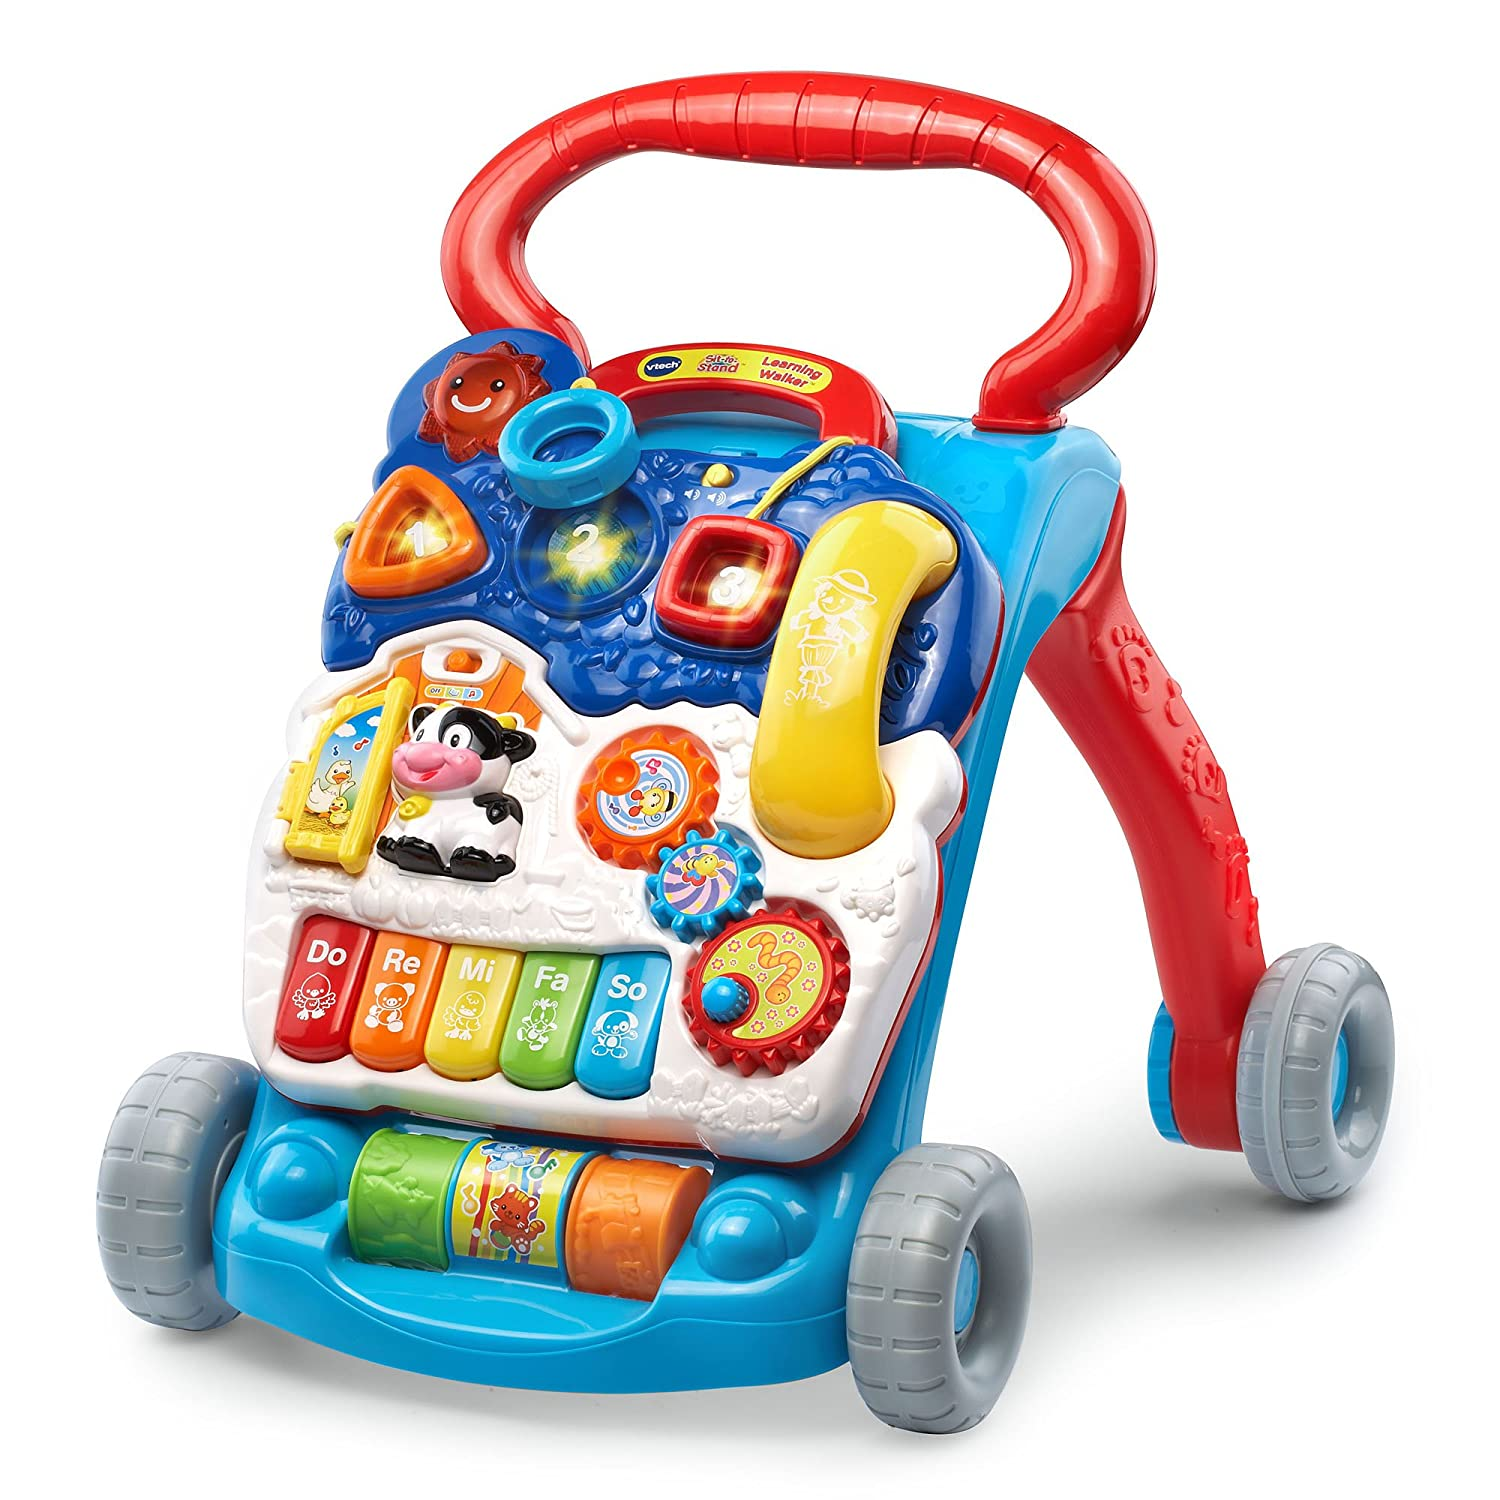 14 Best Educational Infant Toys | Parenting